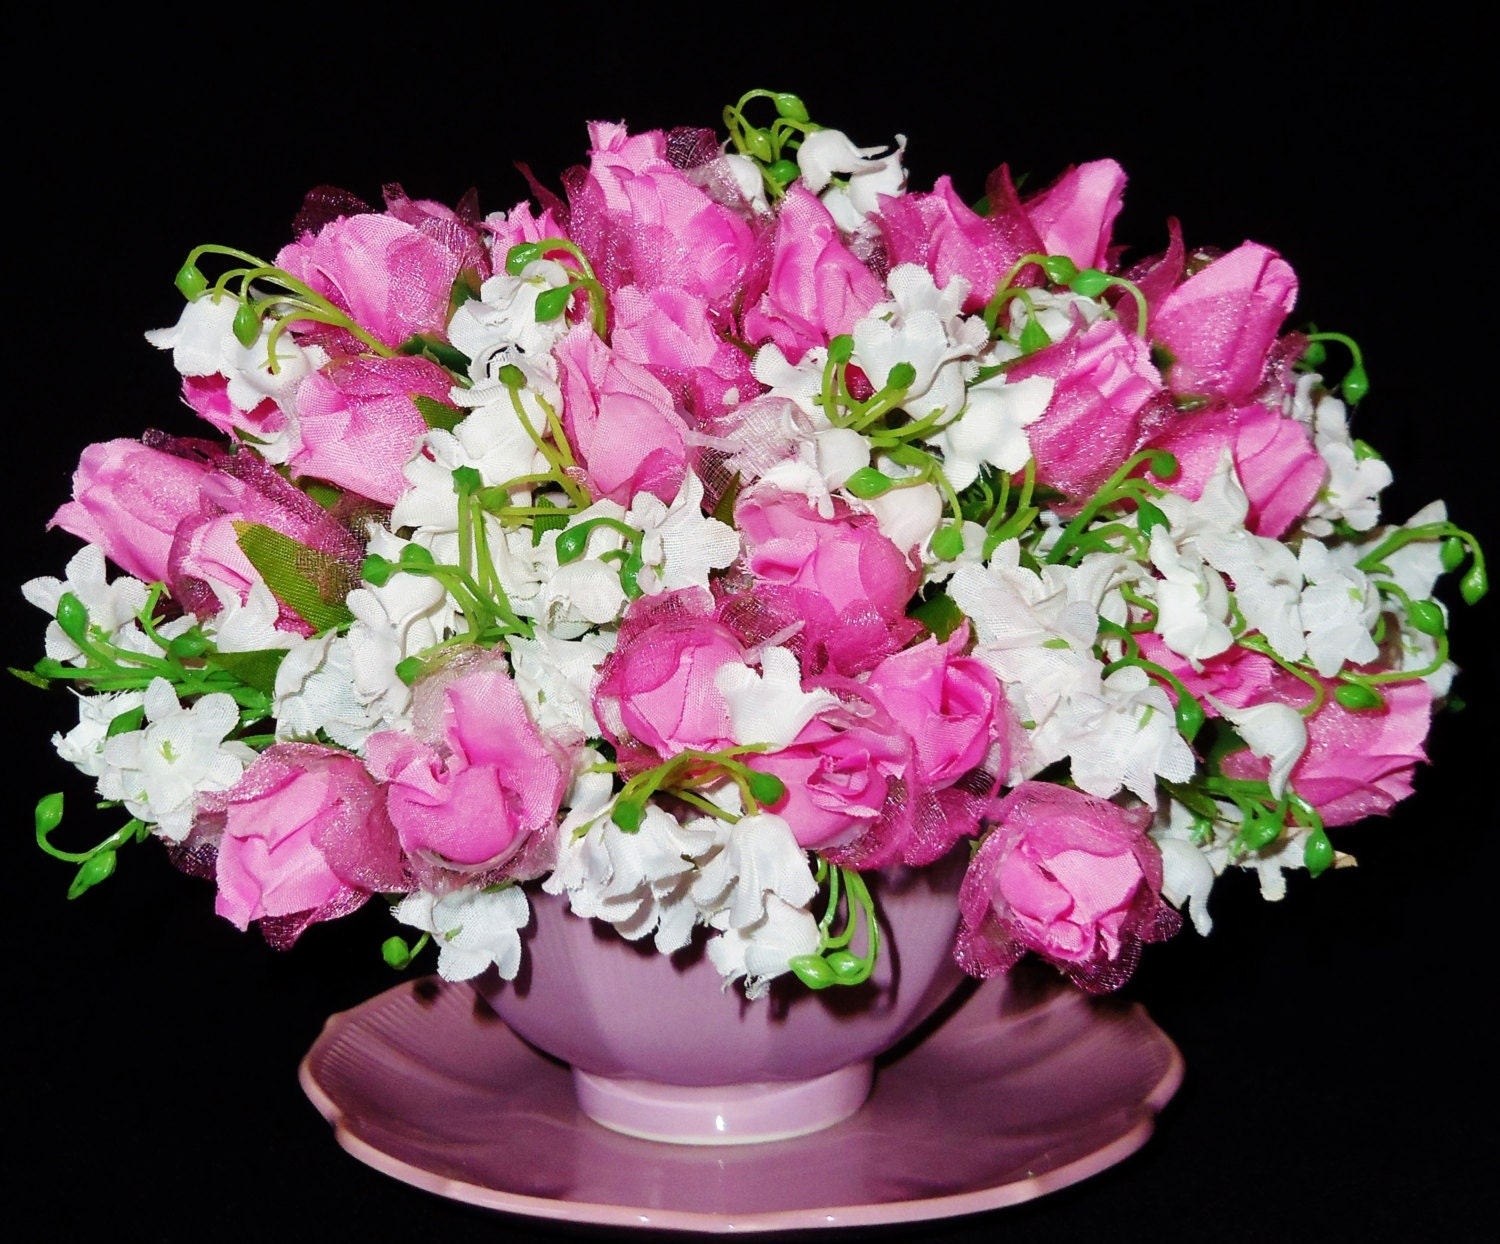 silk flower arrangement pink roses white lilies of the